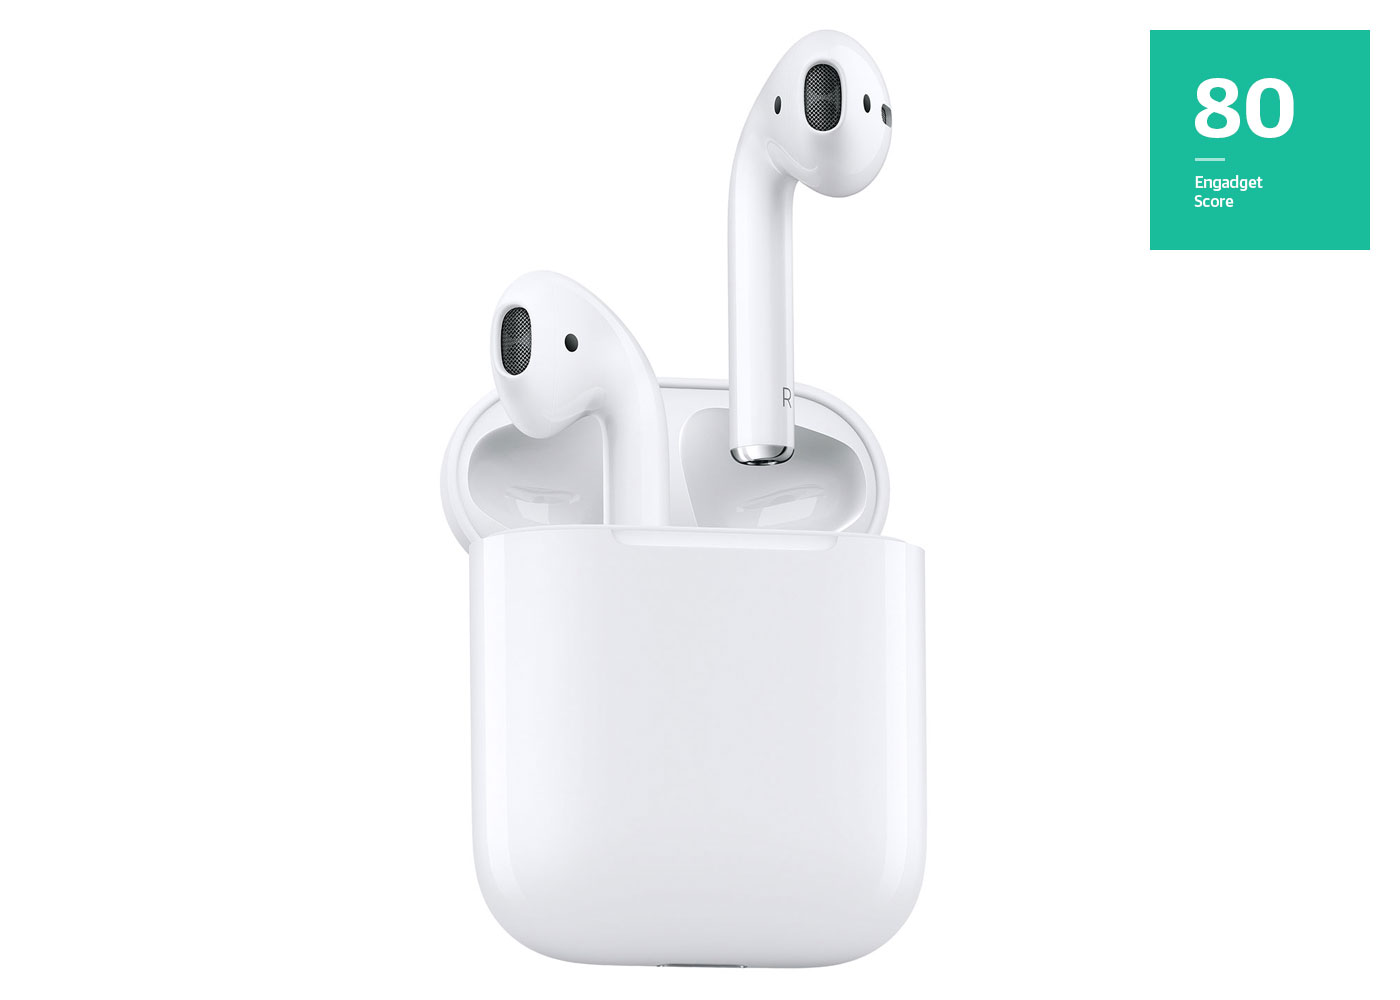 Airpods, score of 80